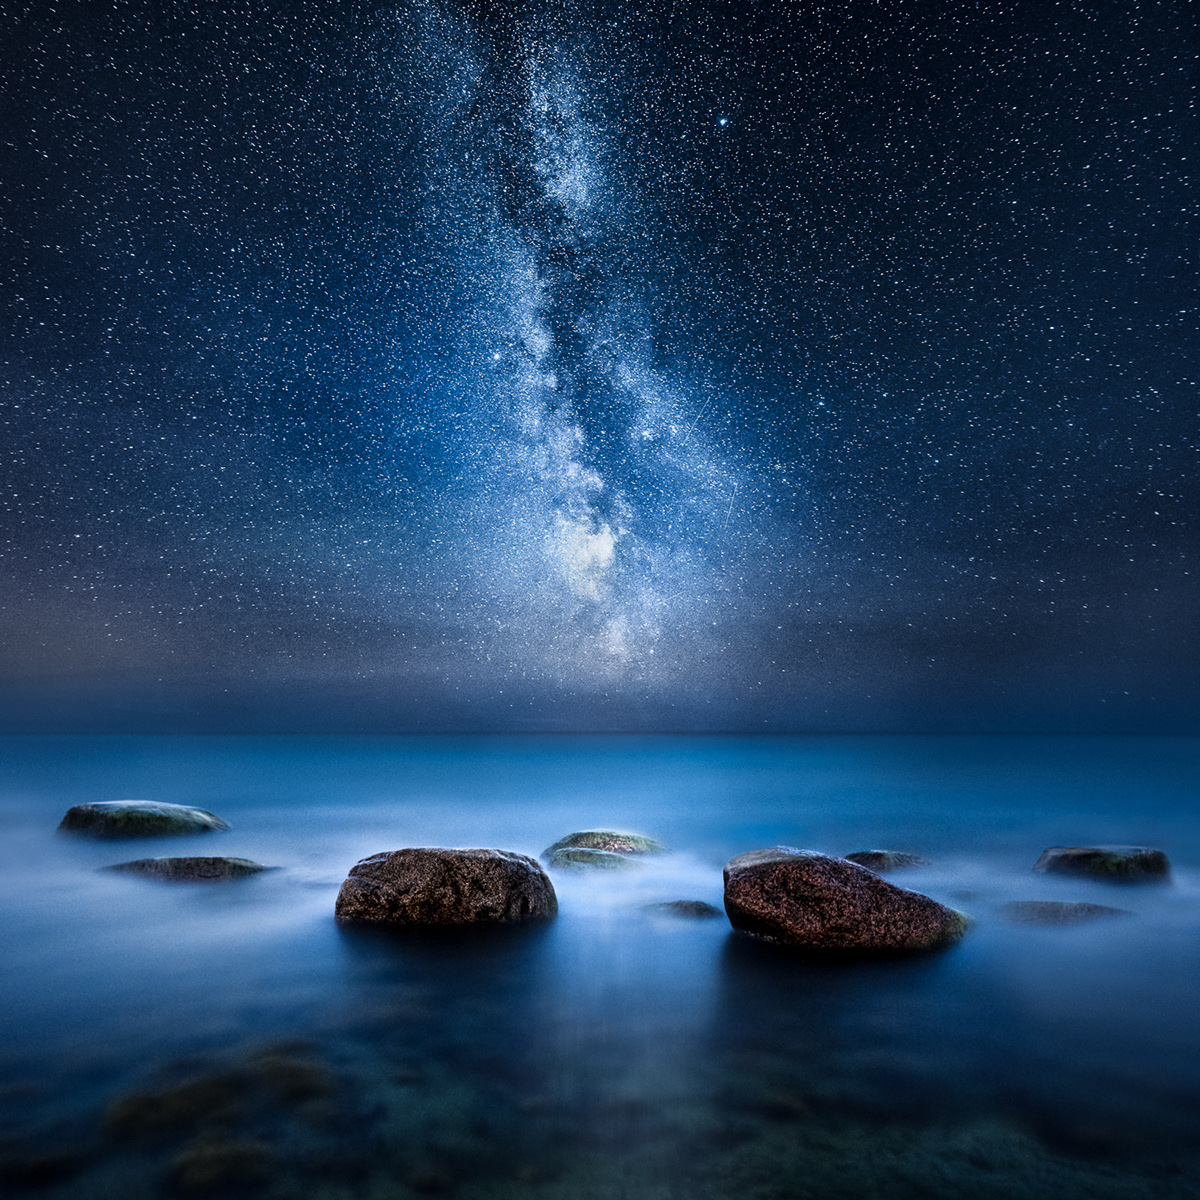 Mikko Lagerstedt - Invisible by day - 1